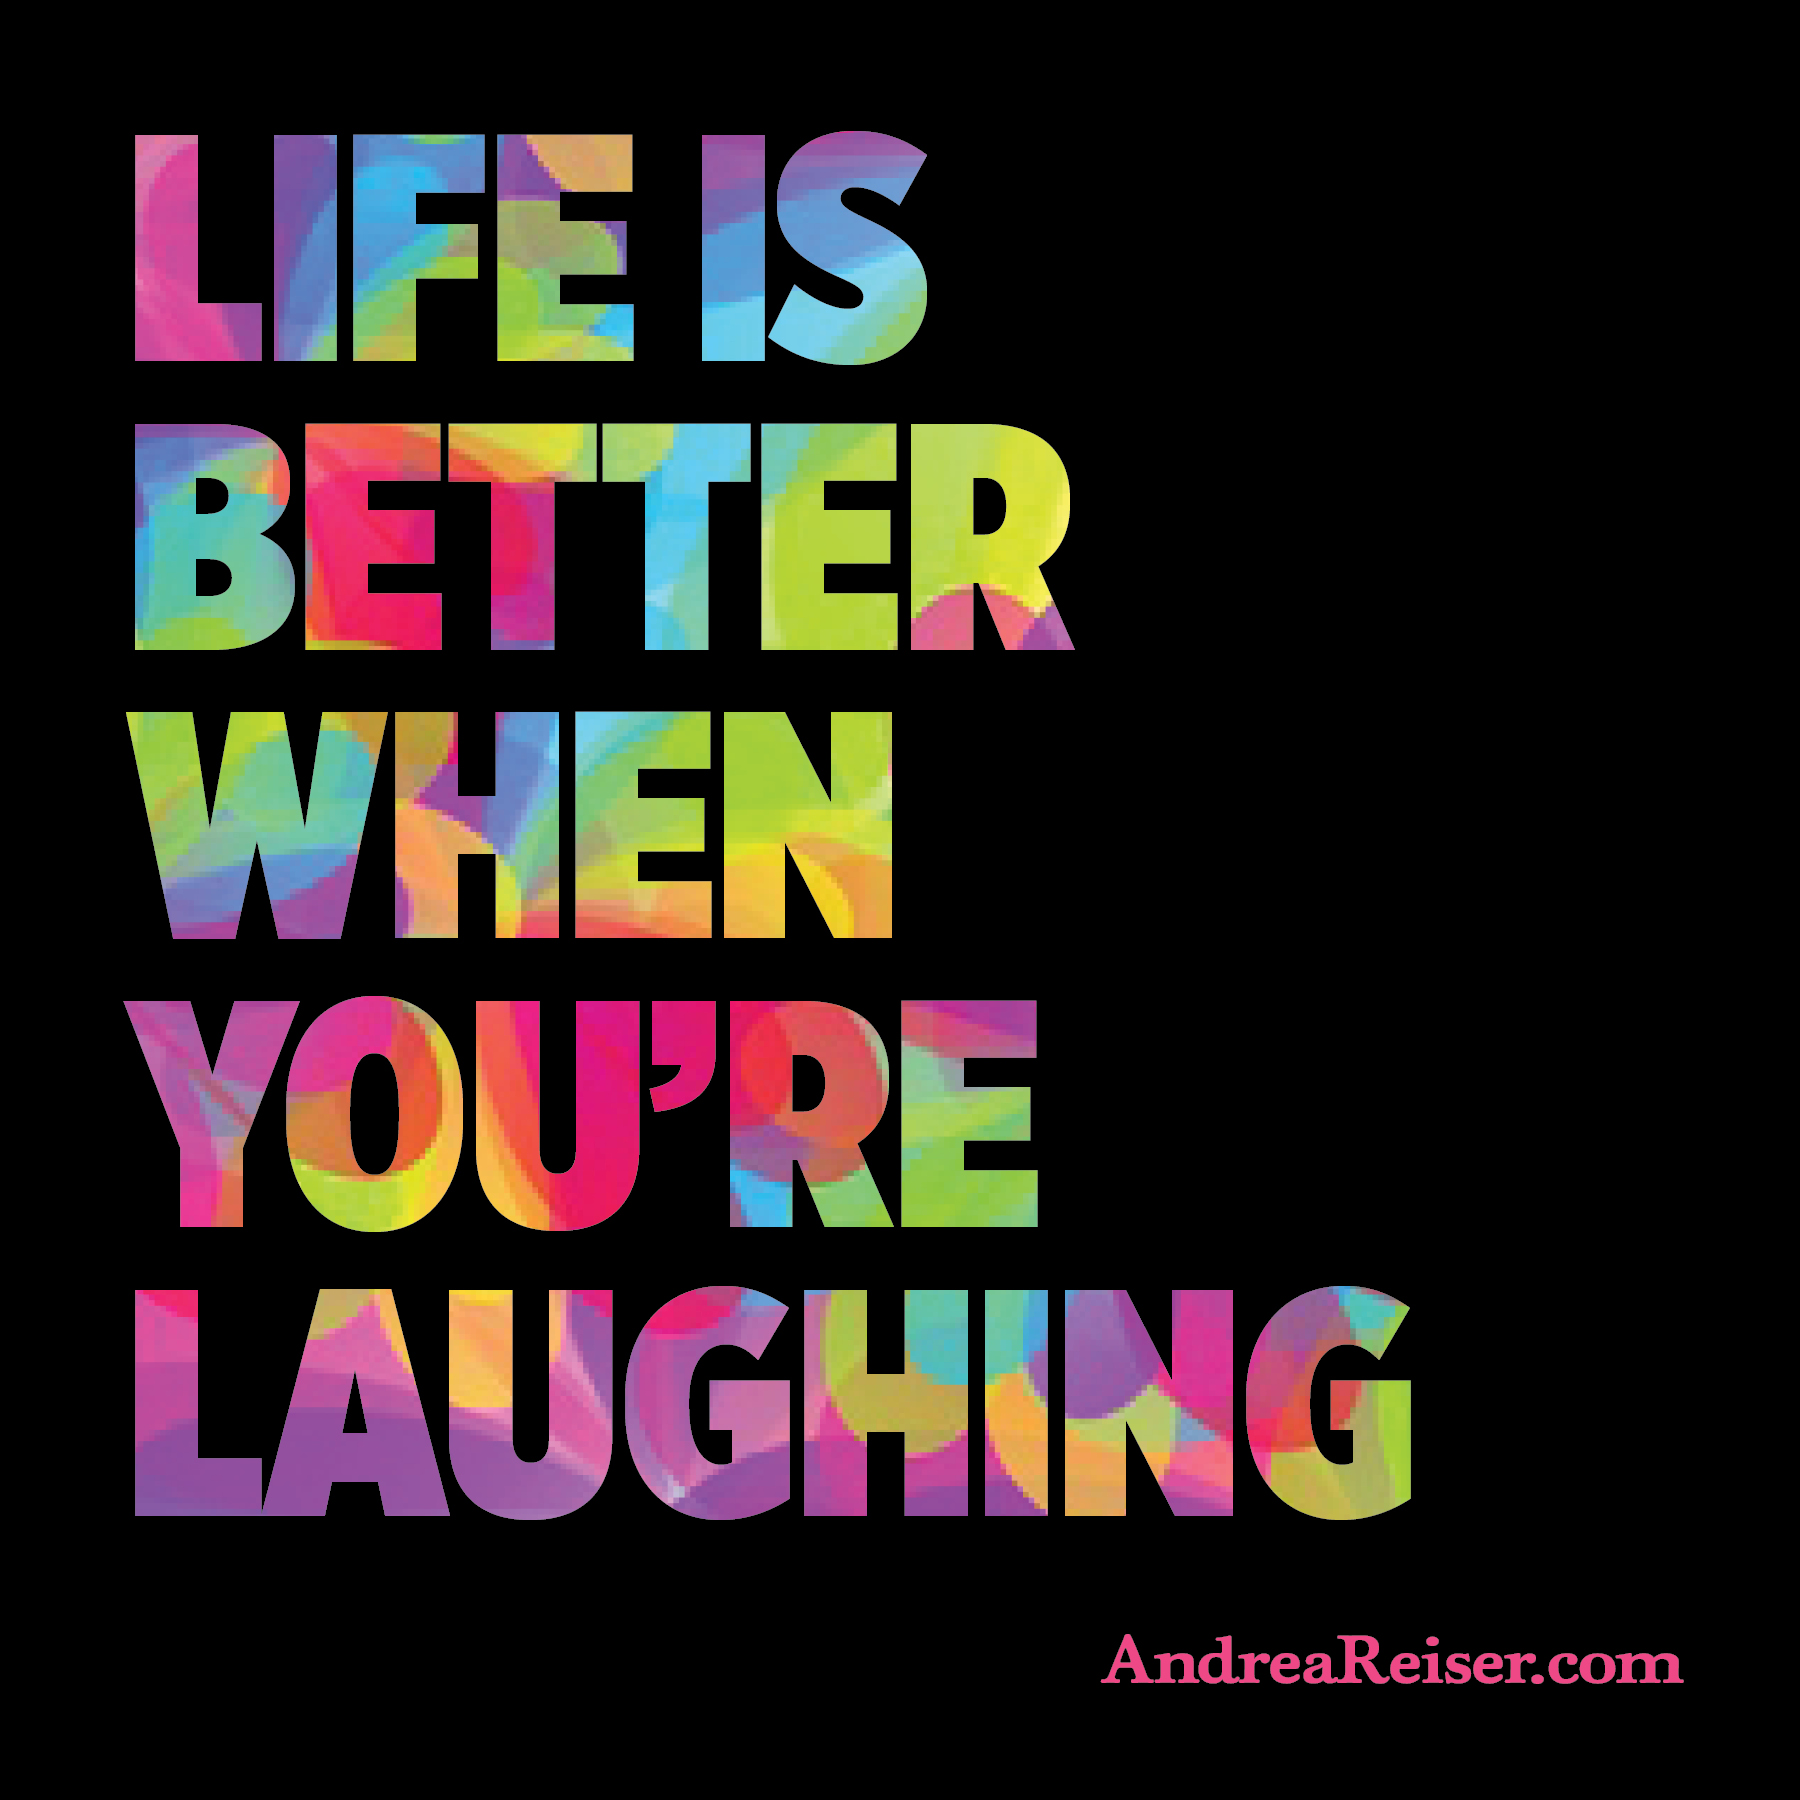 life is better when youre laughing andrea reiser andrea